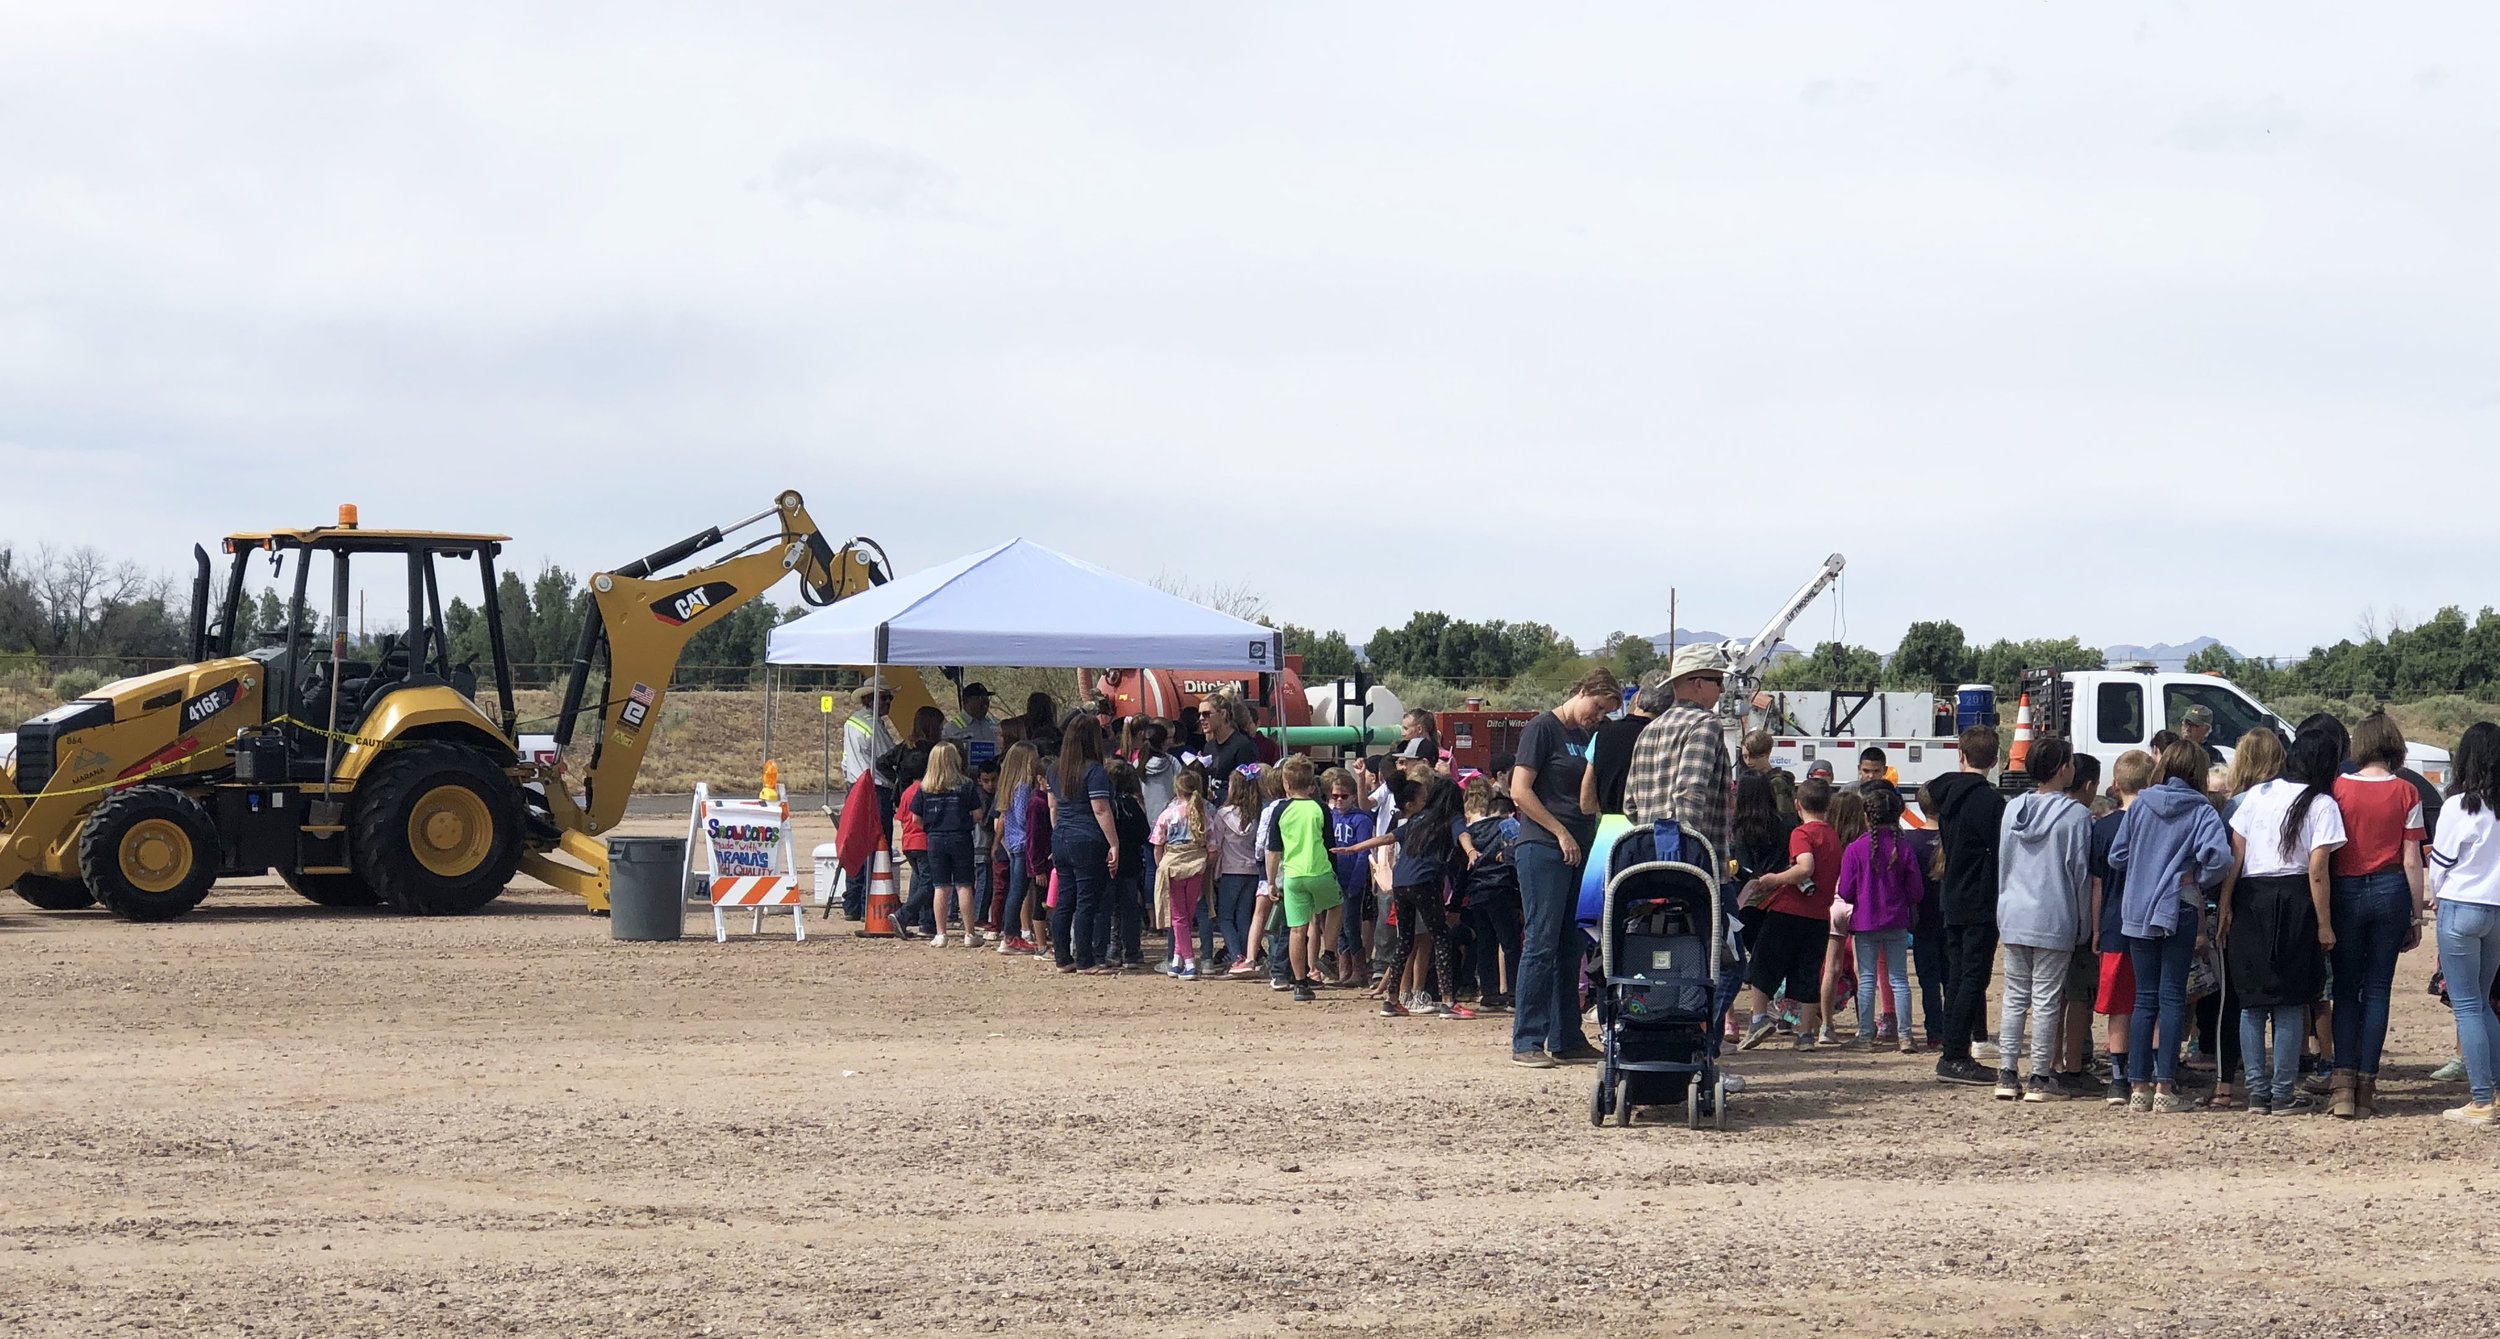 Marana Water were giving away free snow cones that attracted a long line.